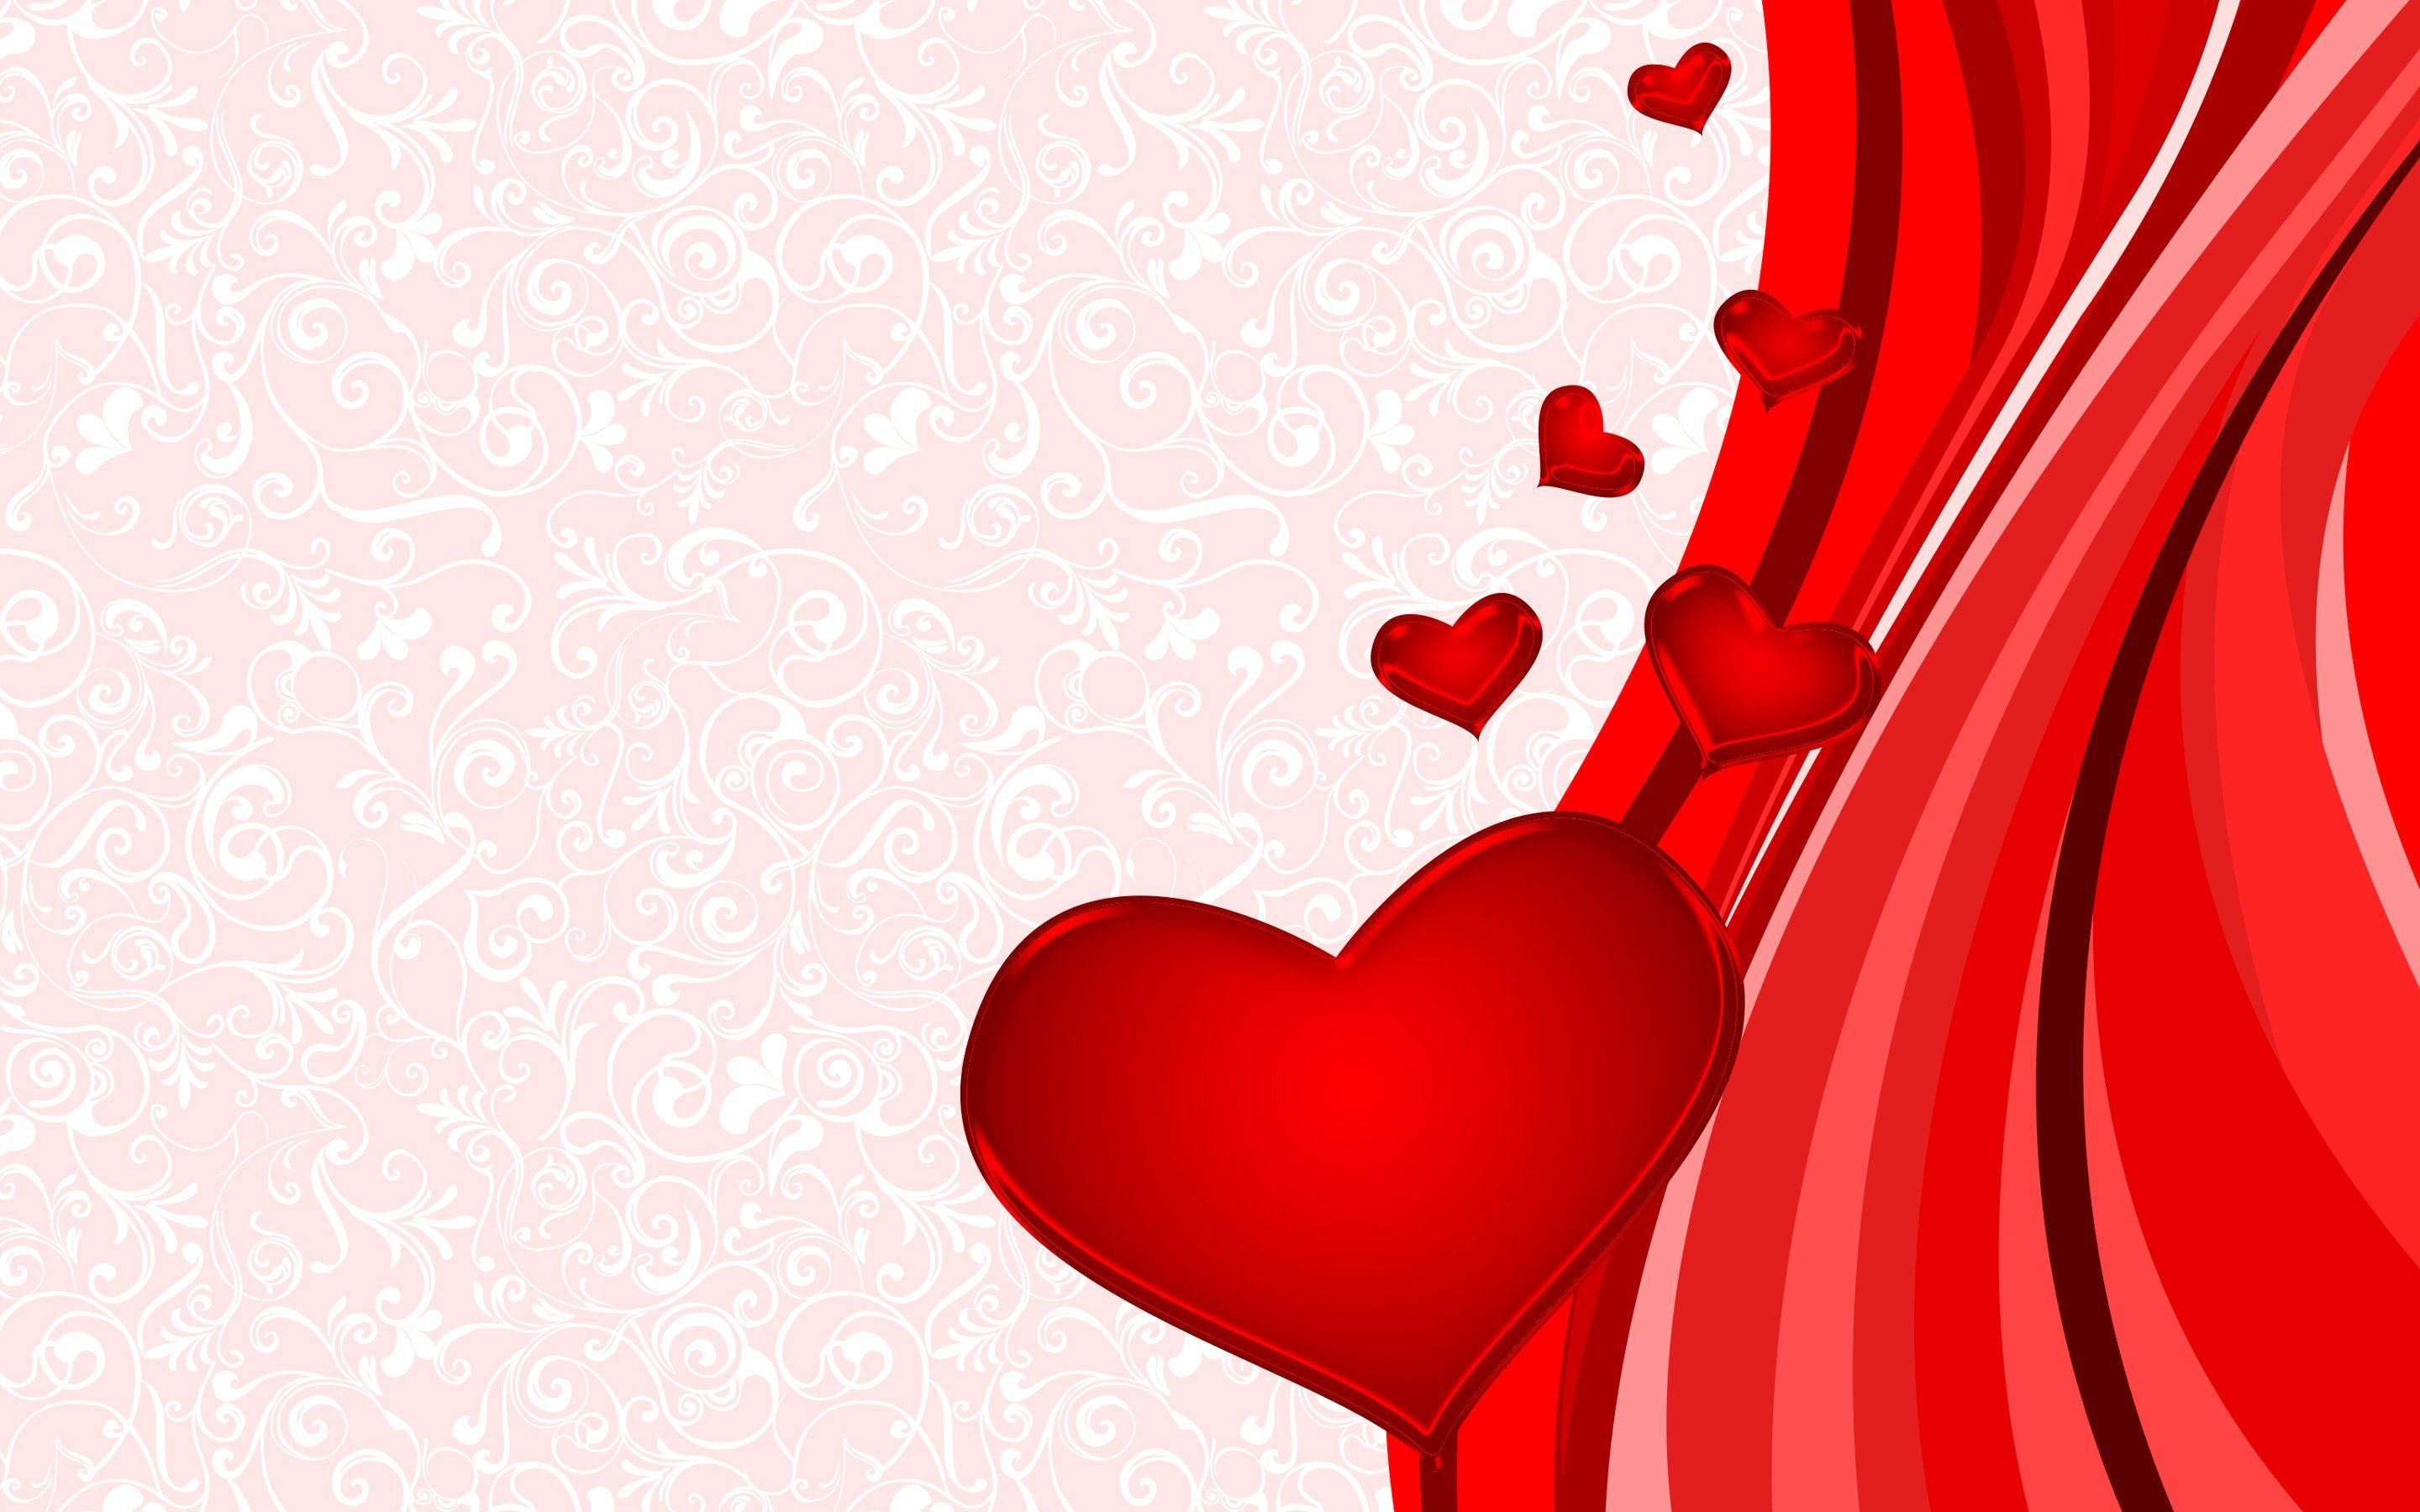 53 Best Love Hd Wallpapers Images On Pinterest: Best Images About Love On Pinterest Google Search Love And